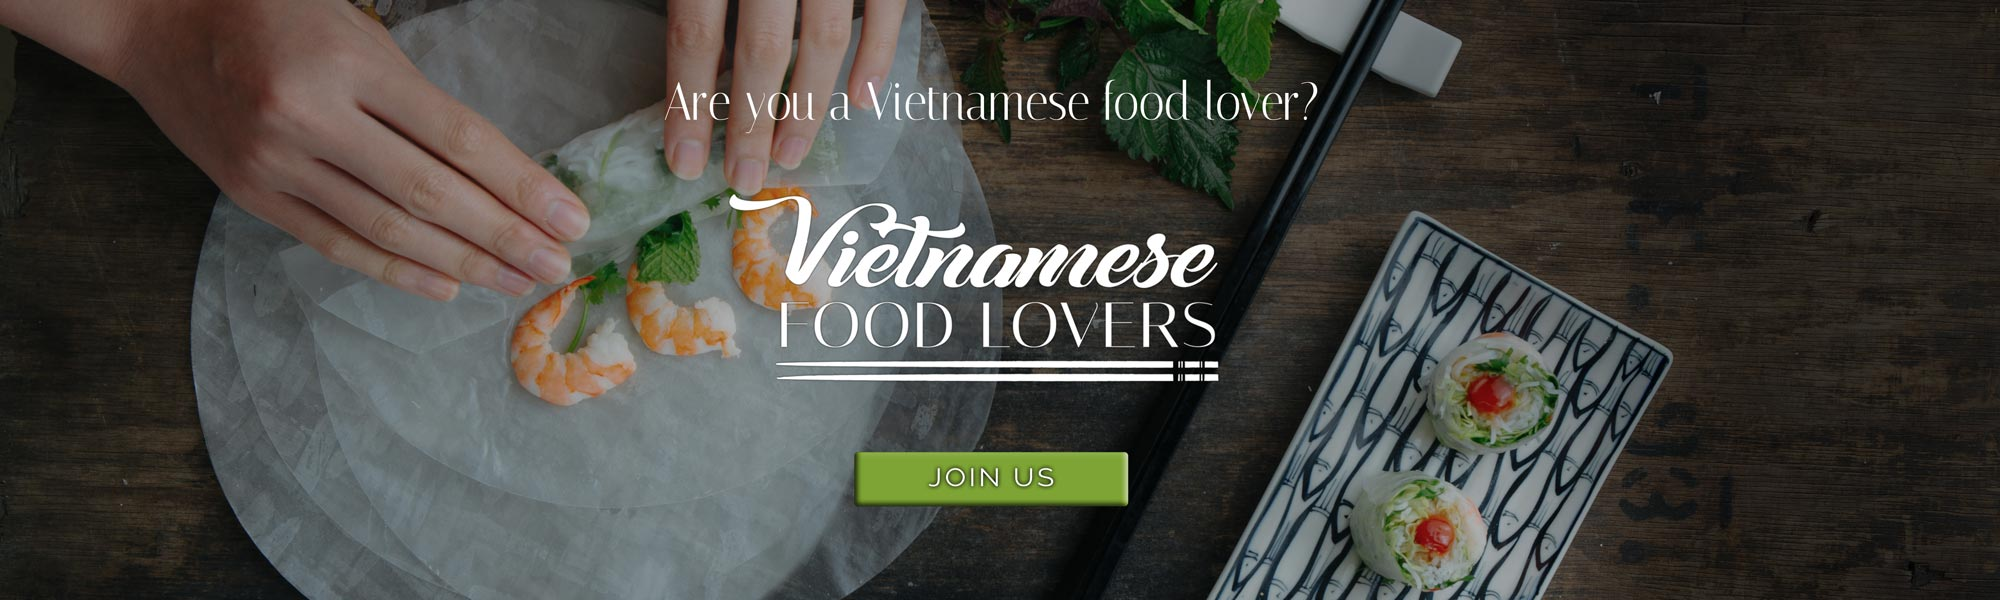 Vietnamese Food Lover